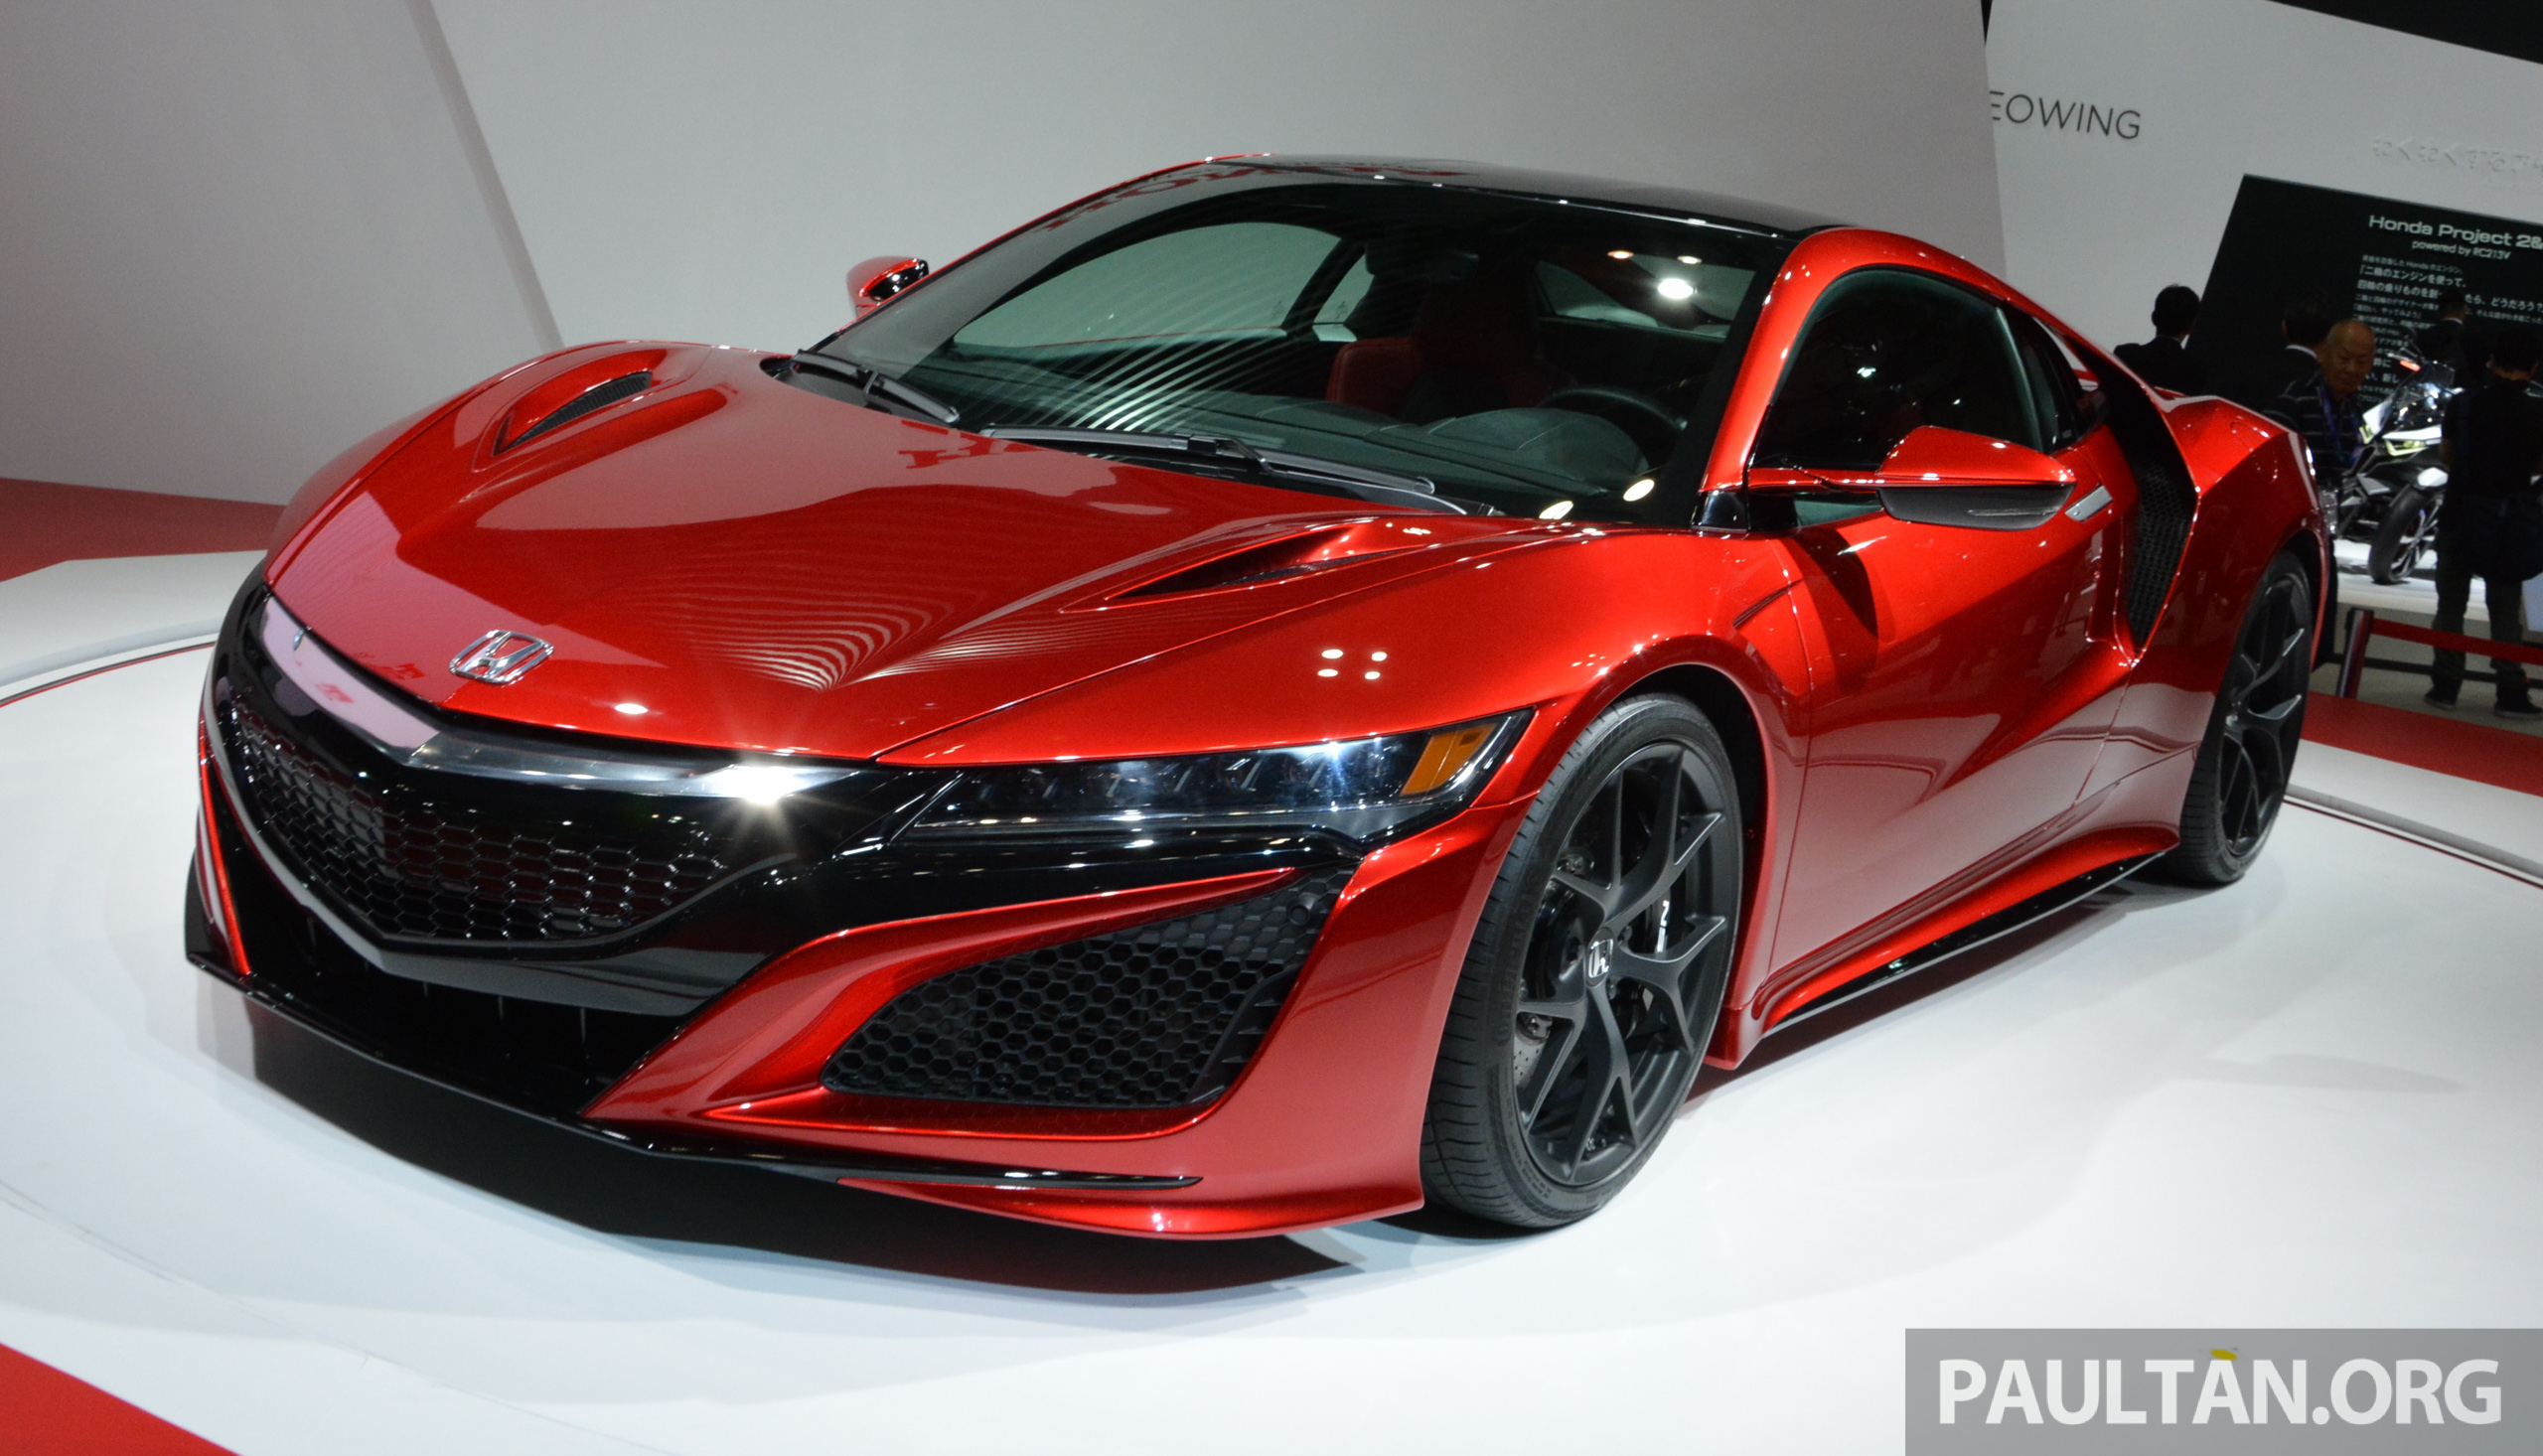 2016 Honda NSX Priced From RM755k In Europe Higher Than